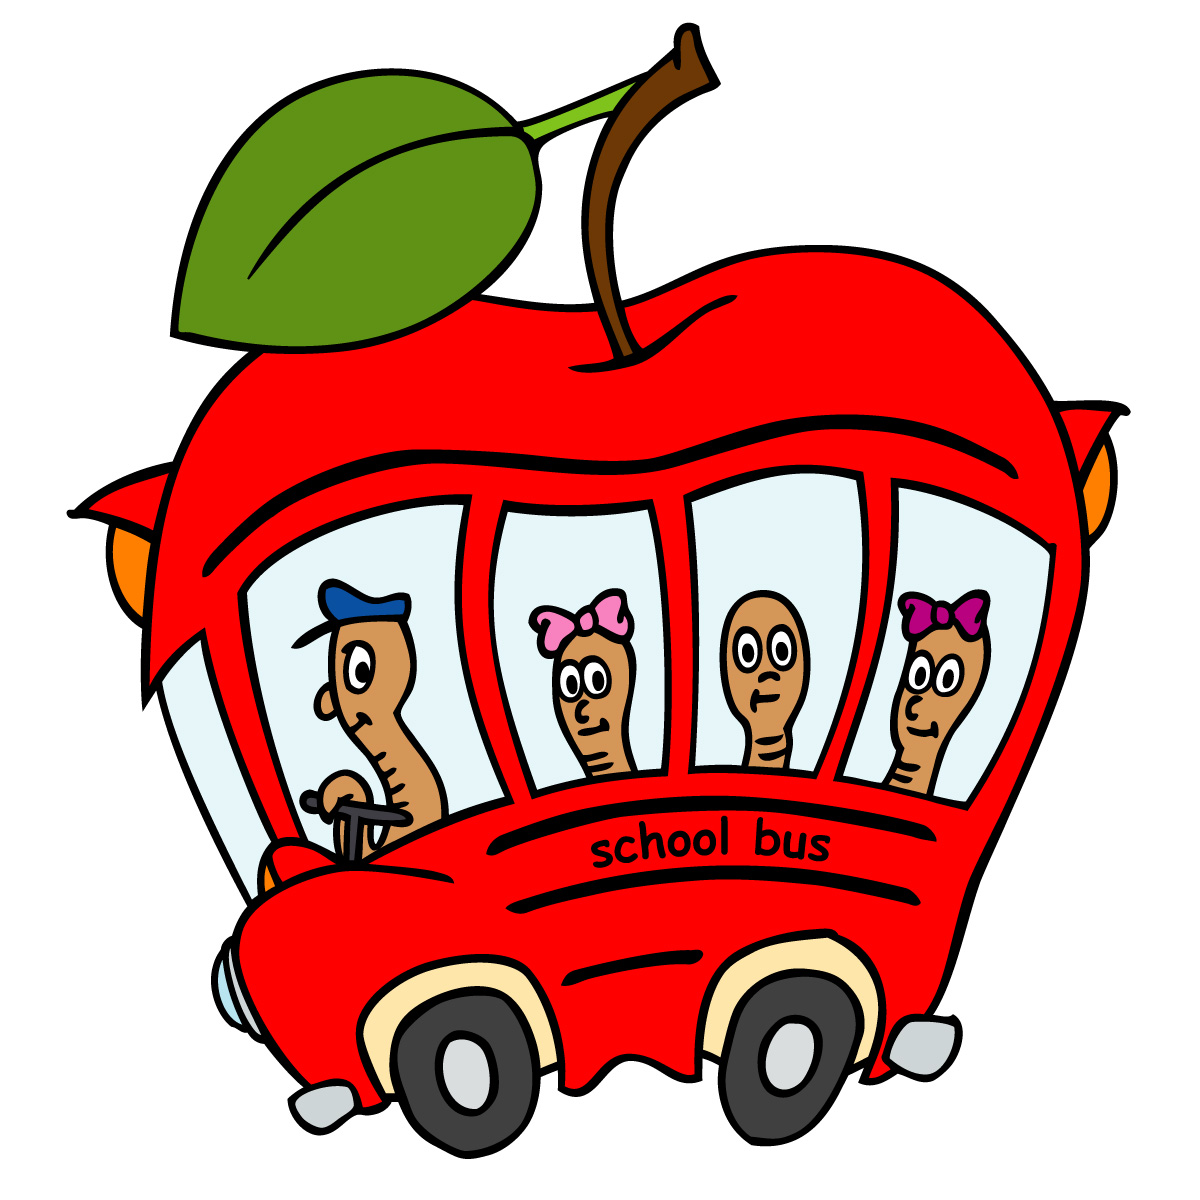 Driving school bus funny clipart.